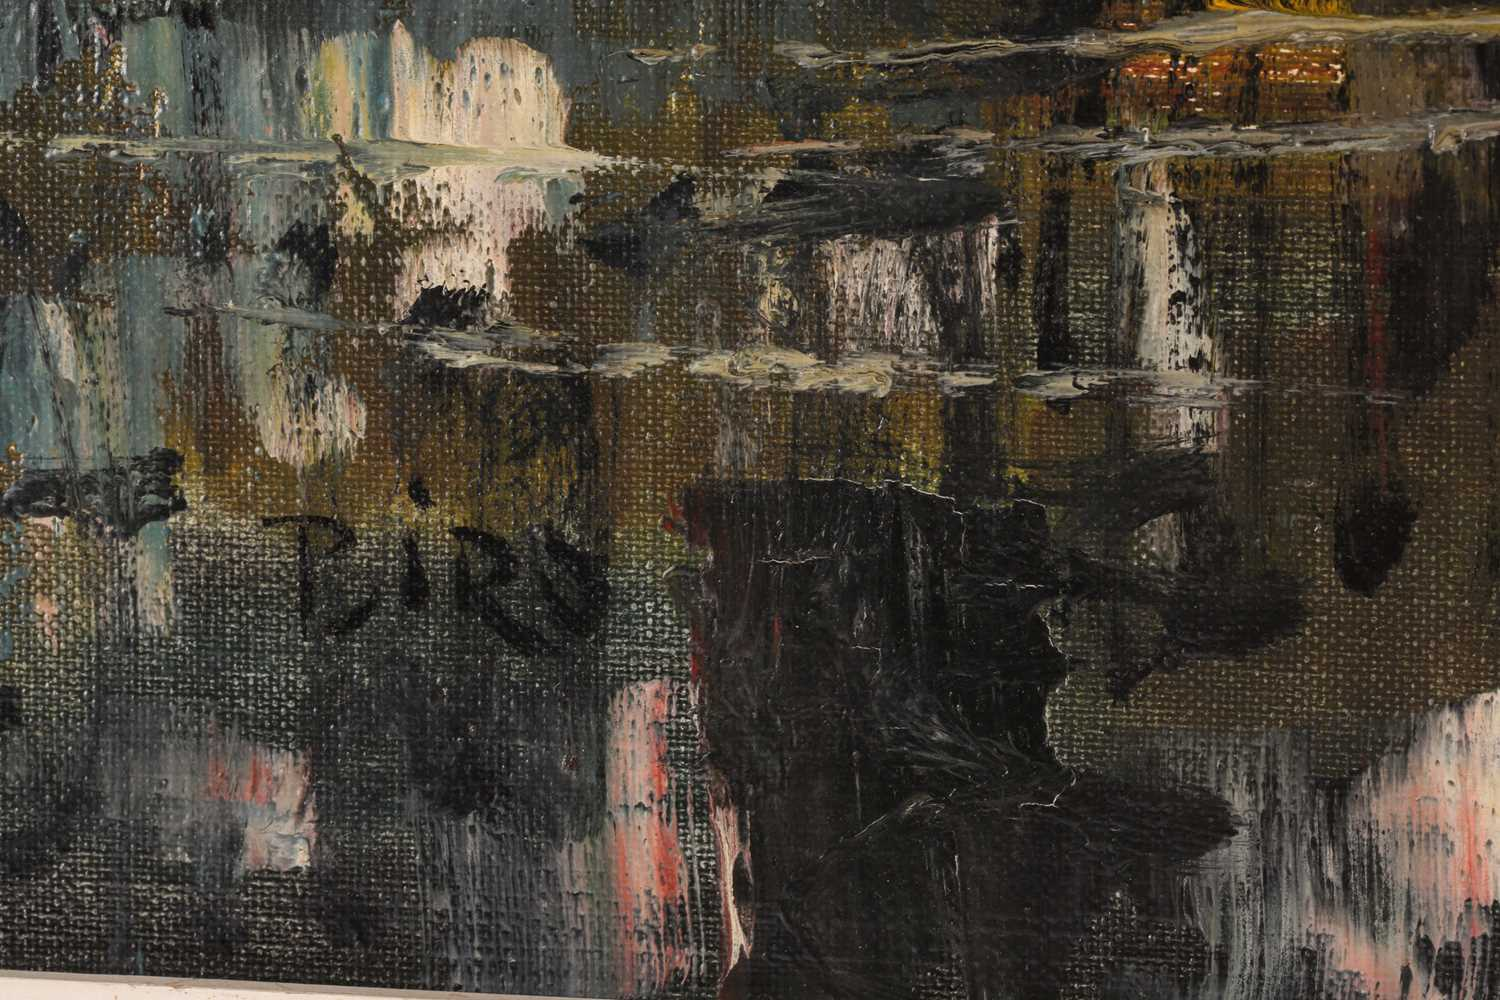 Biro, 20th century school, a townscape painted at night, oil on canvas, signed to lower left corner, - Image 2 of 6